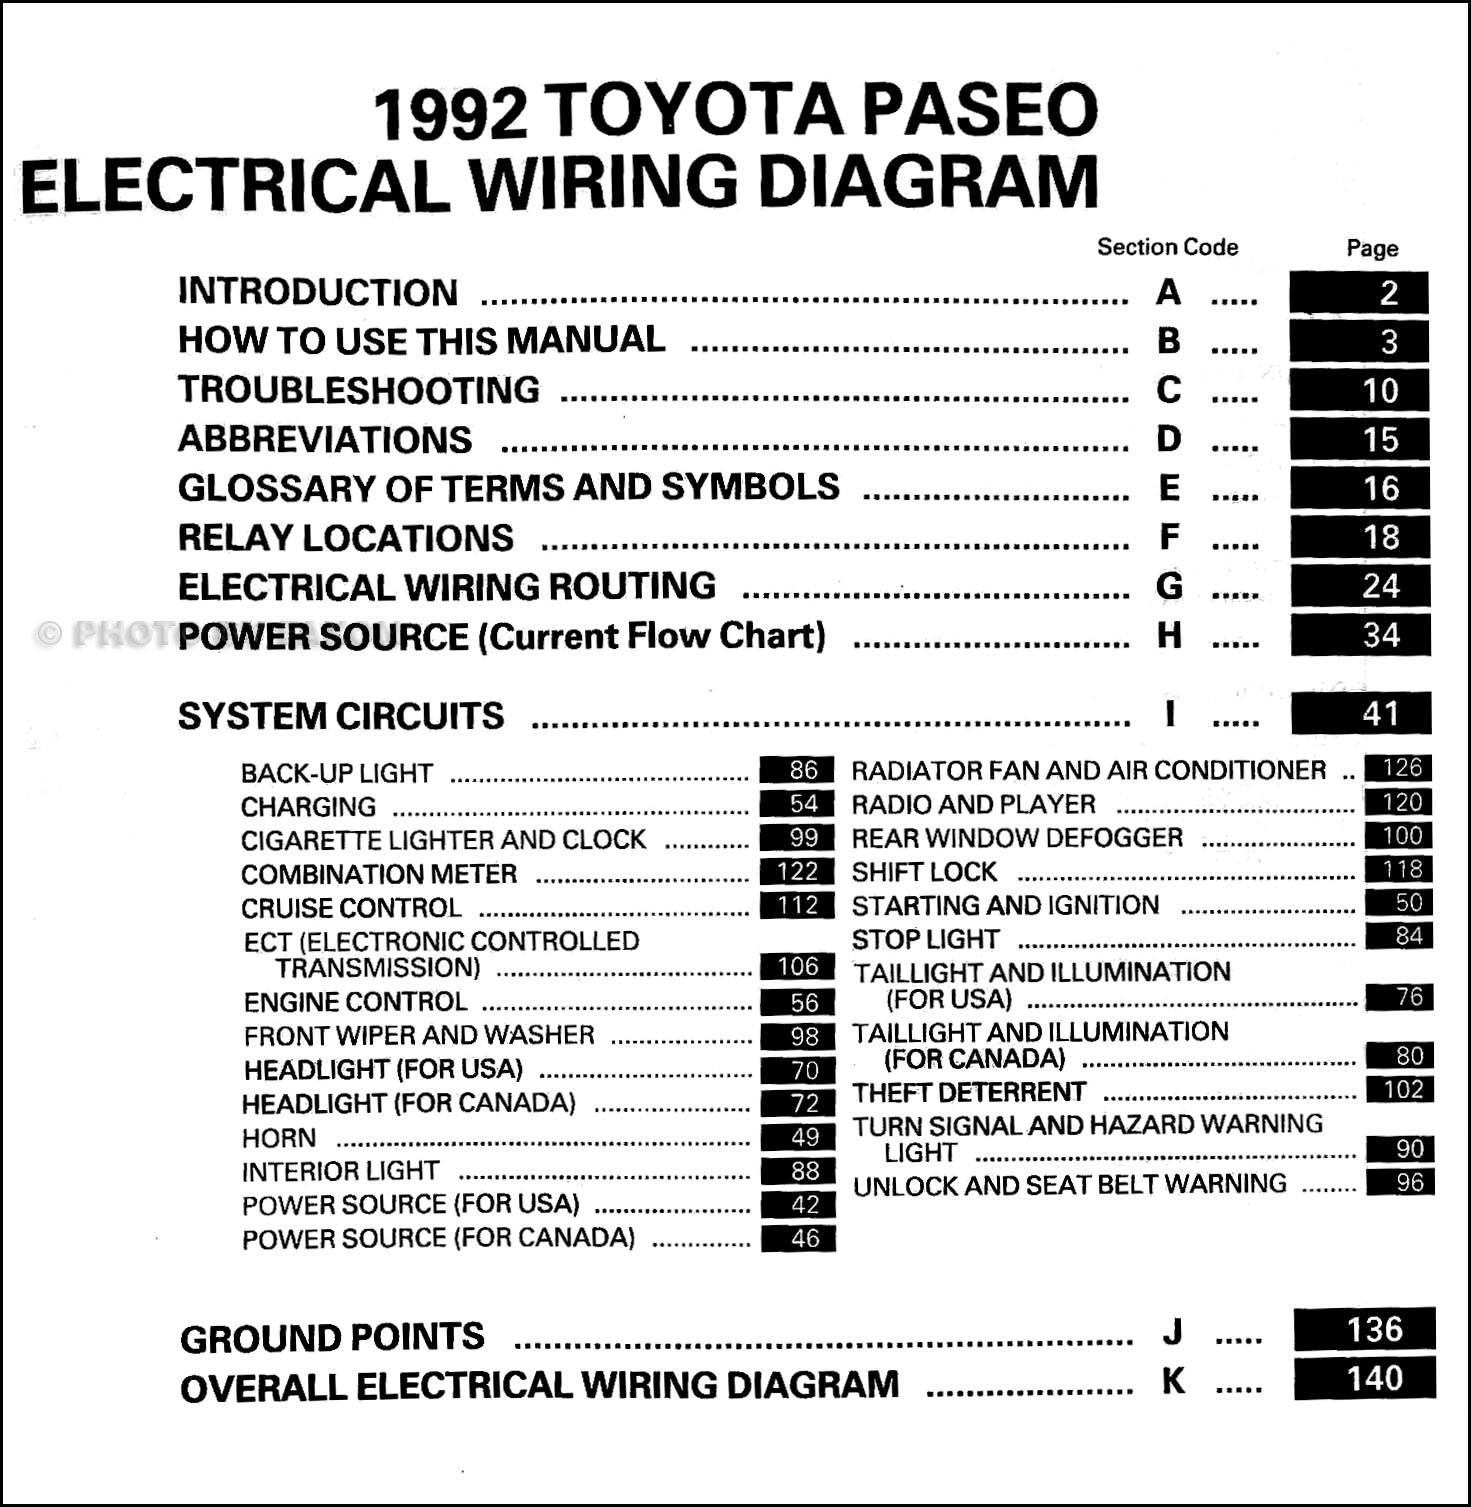 1992ToyotaPaseoOWD TOC 1992 toyota paseo wiring diagram manual original wiring diagram baseboard heater at crackthecode.co